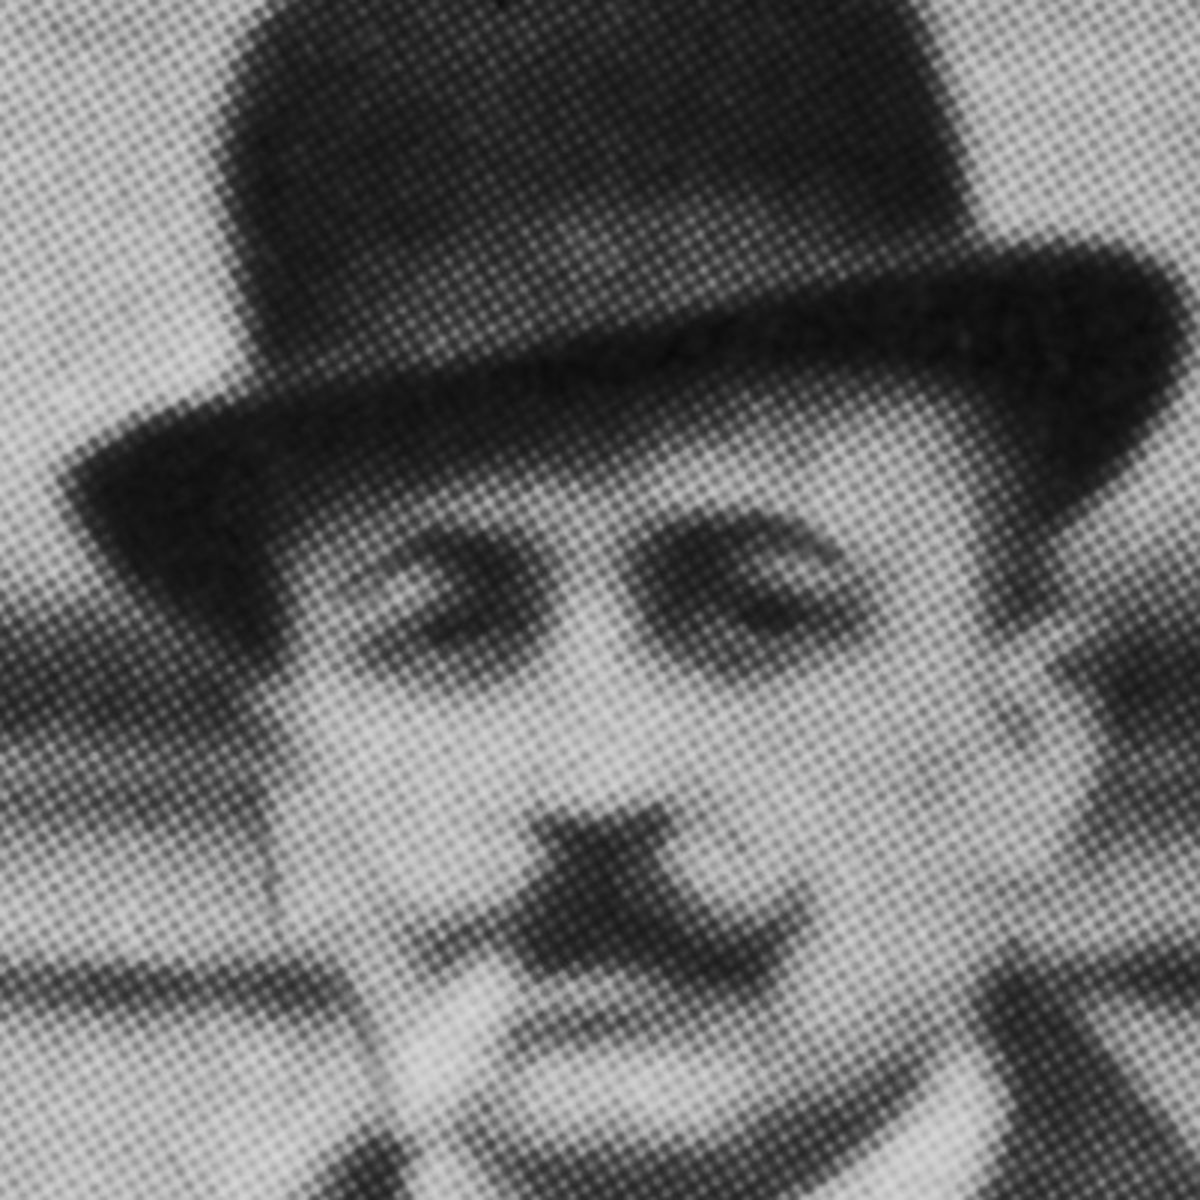 Filippo Tommaso Emilio Marinetti was known as the founder of Futurism after publishing his manifesto in 1909. Learn more at Biography.com.